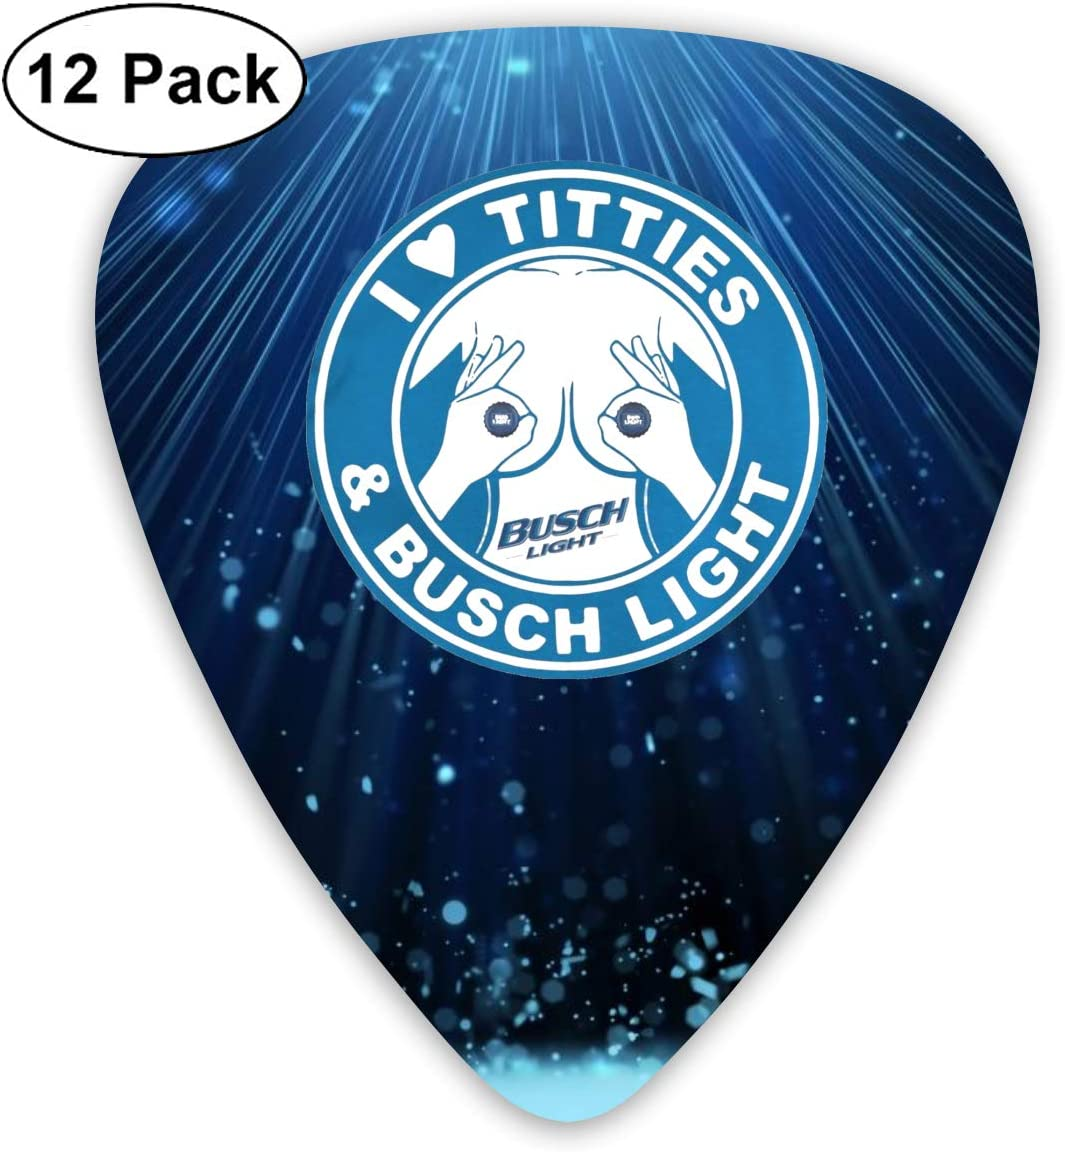 ChristieAHodge I Love Titties and Busch Light Guitar Picks Guitar Supplies Color One Size